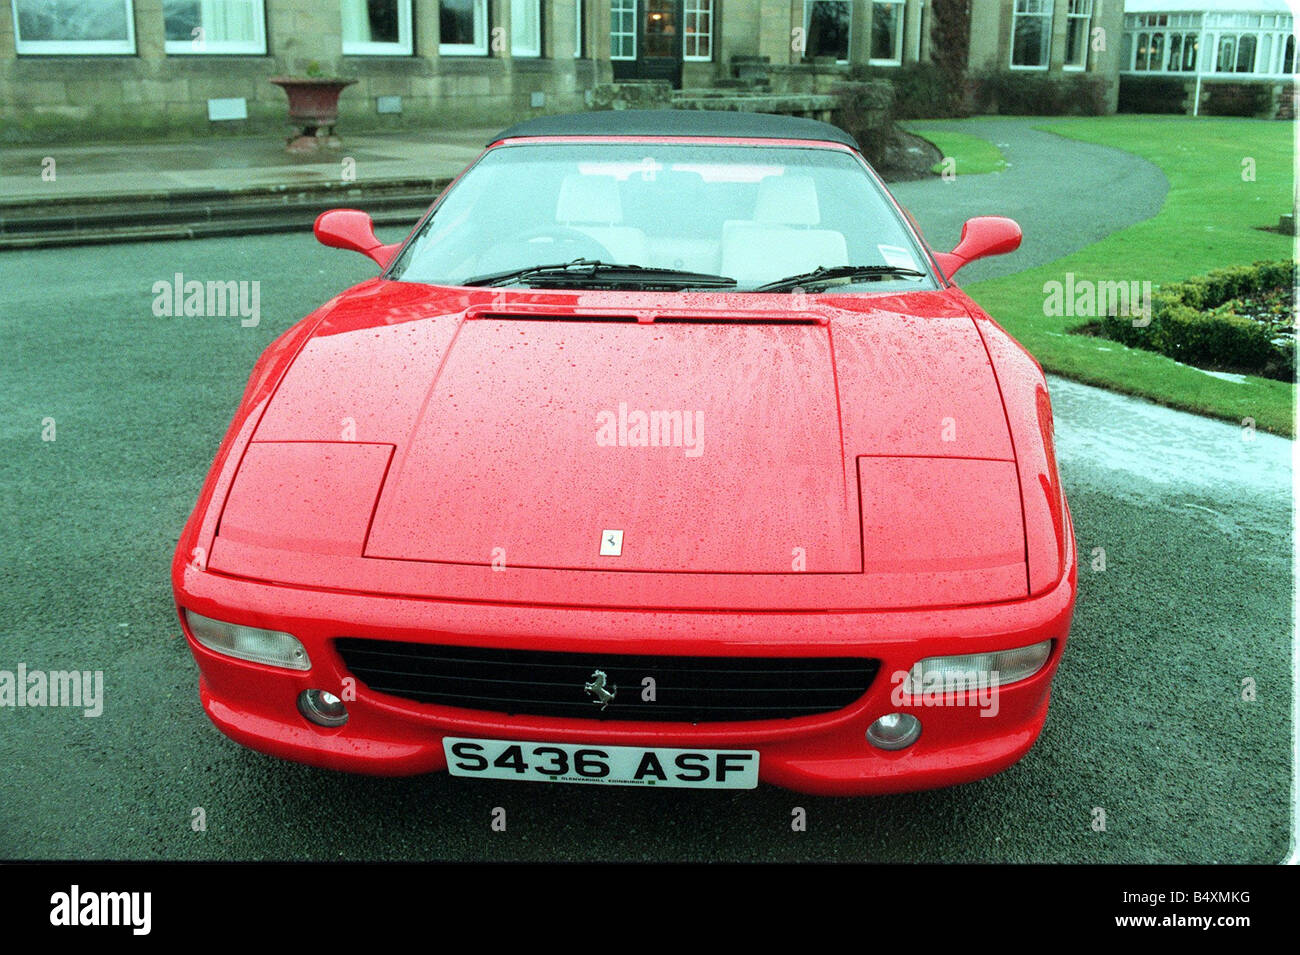 Ferrari Cars Lineup At The Gleneagles Hotel Pictured Is A 355 FI Spider